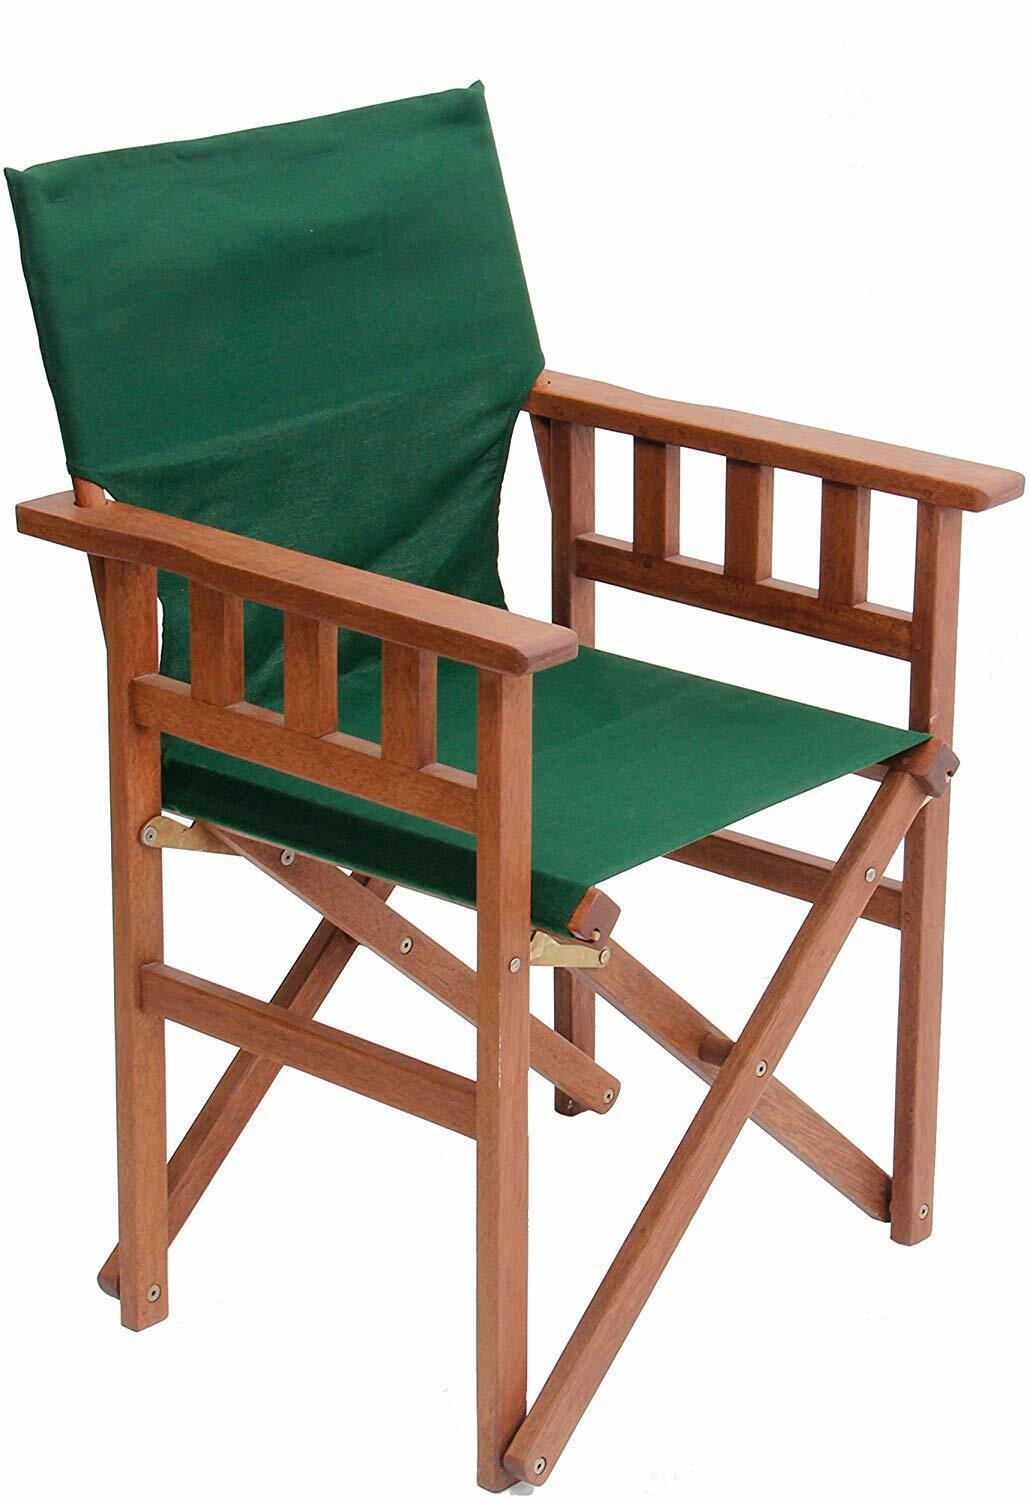 pangean campaign chair patio deck wood folding